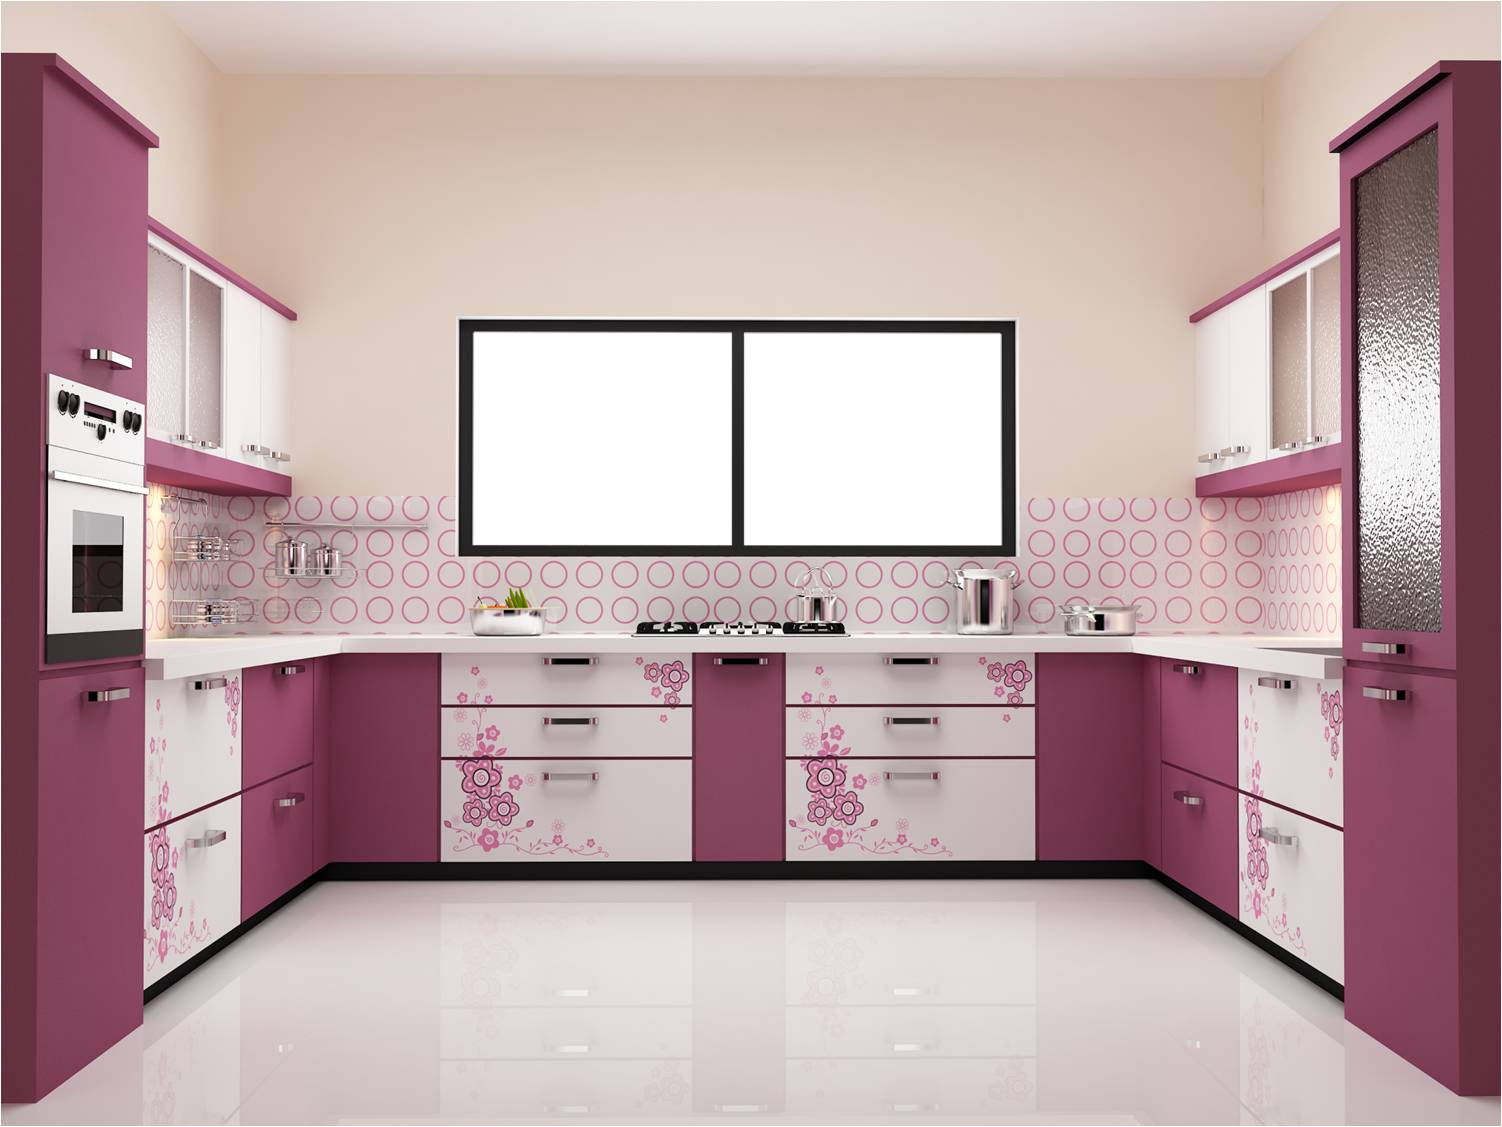 Check out the best kitchen design ideas here!